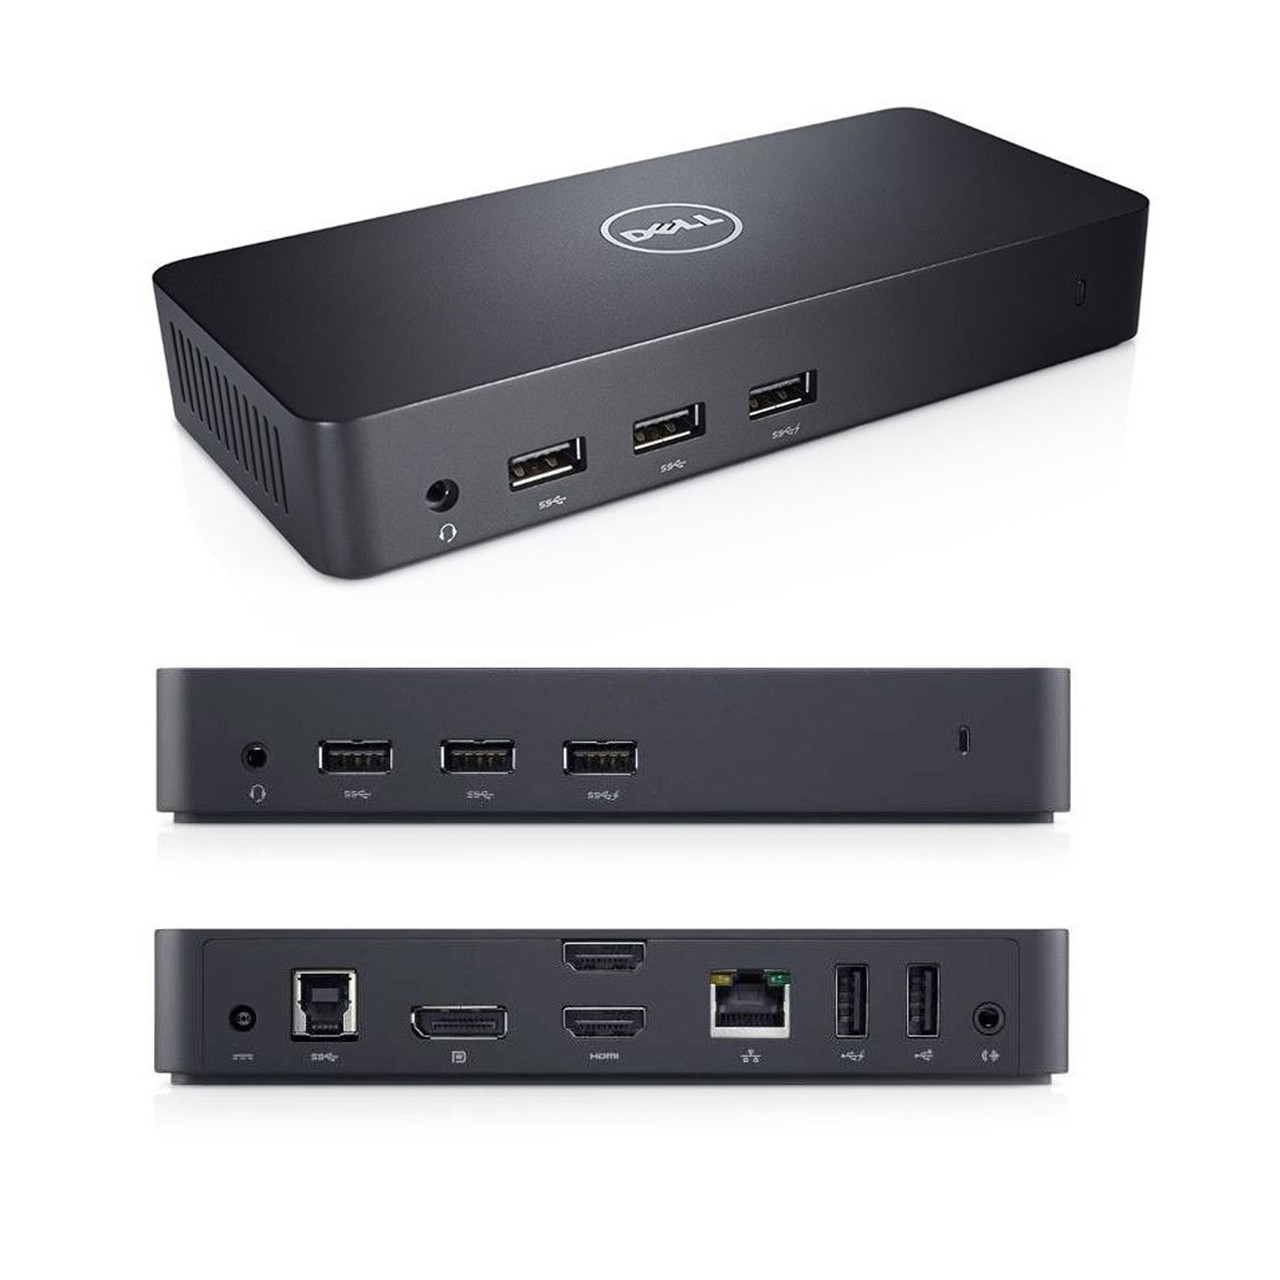 Dell D3100 USB 3 0 UHD 4K Triple Video Docking Station